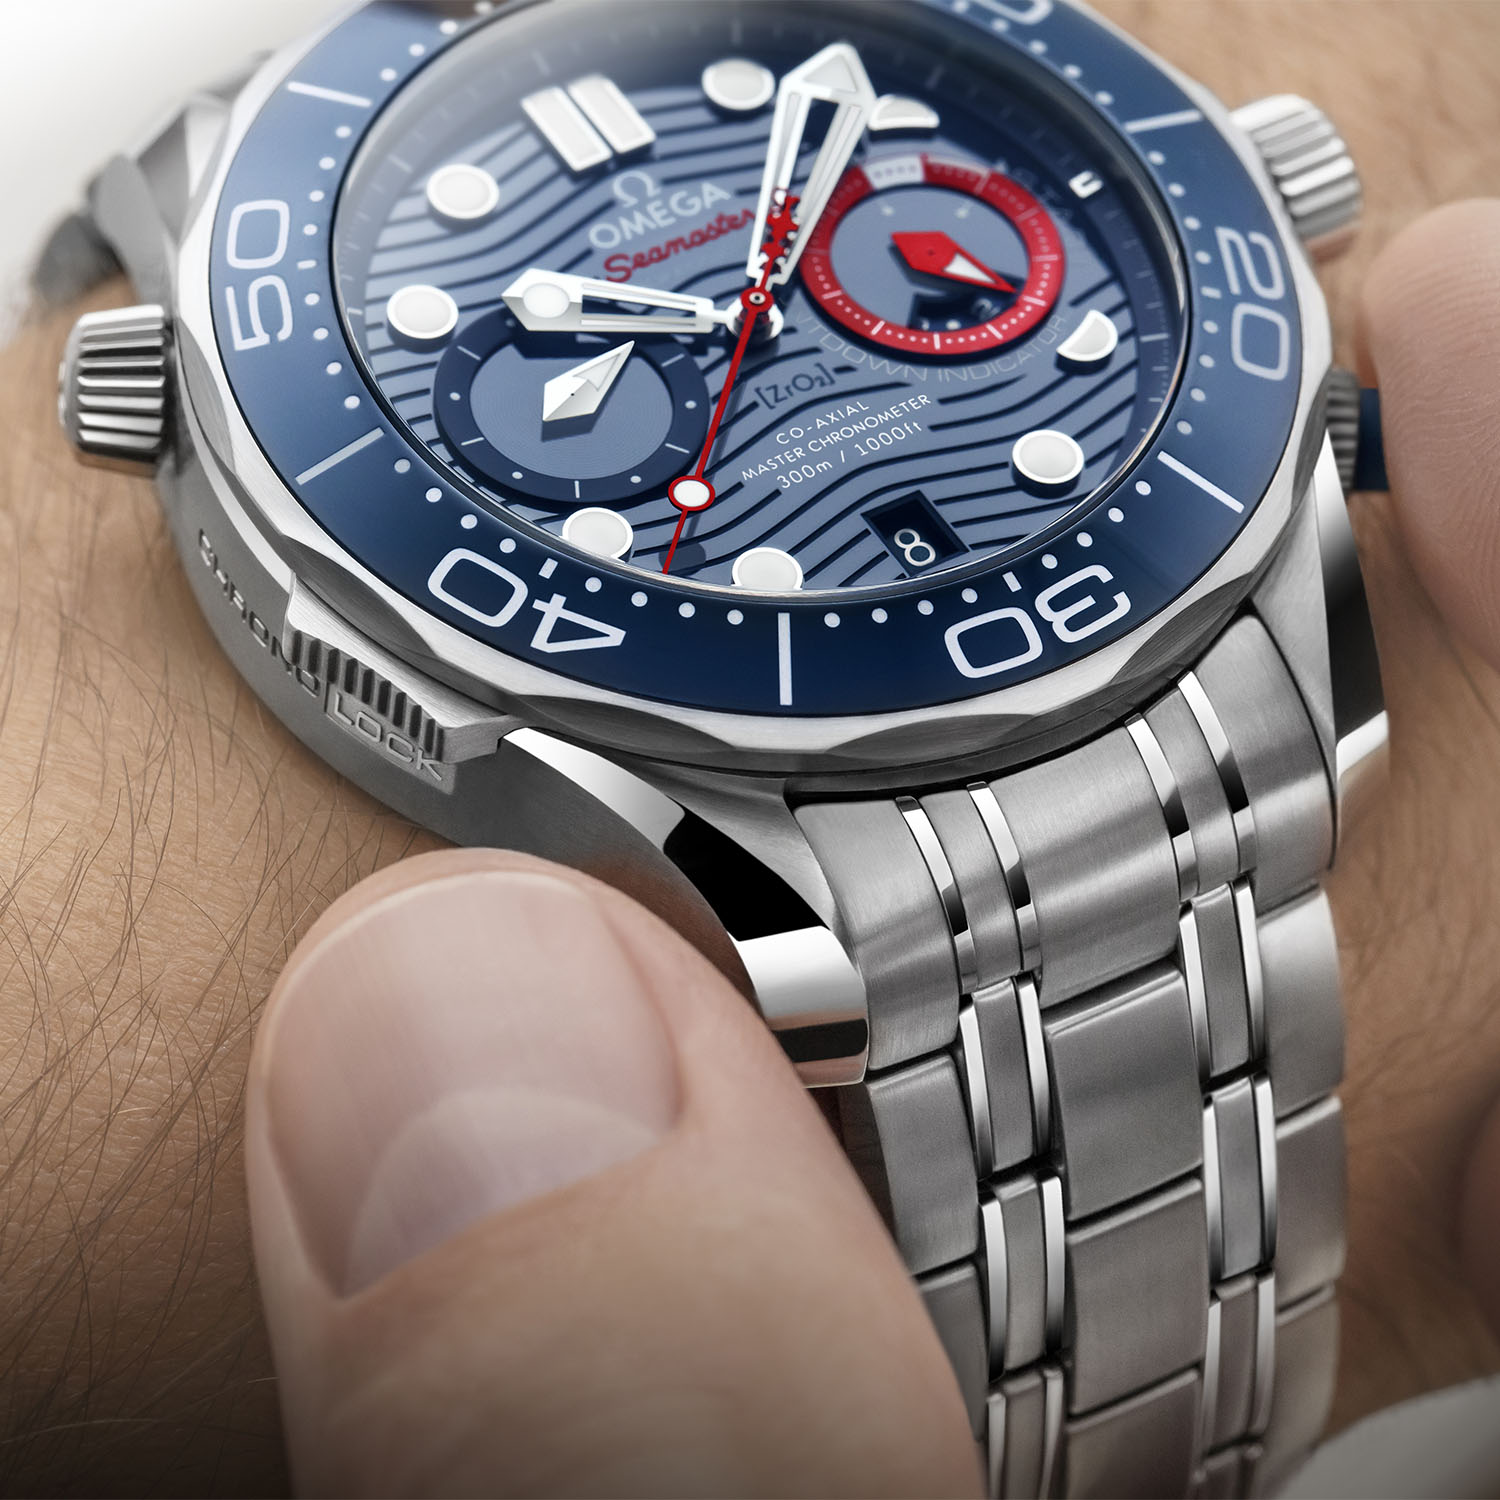 Omega Seamaster Diver 300M 36th Americas Cup Chronograph 210-30-44-51-03-002 - 5